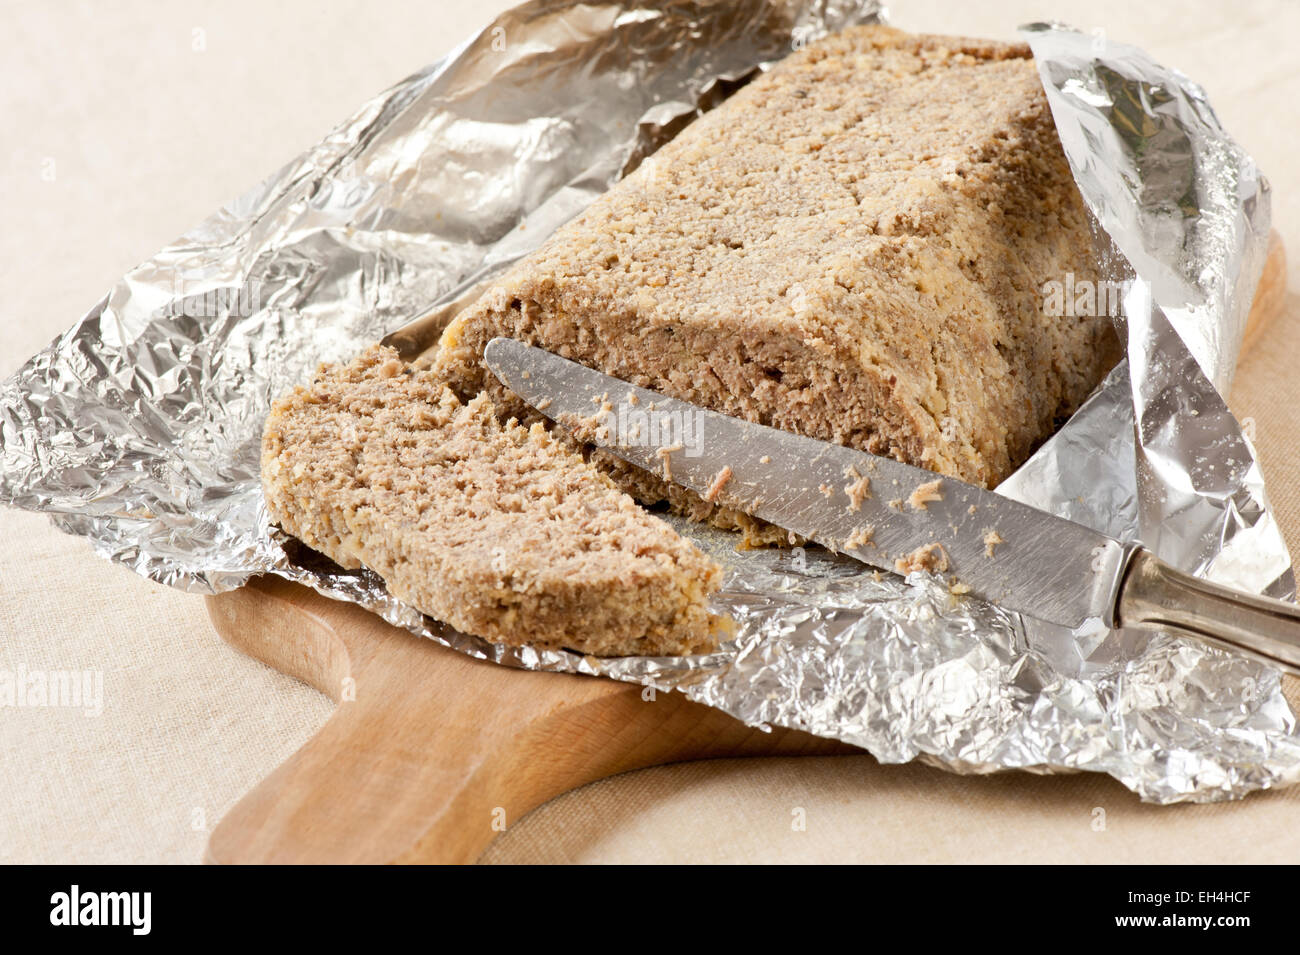 Home made poultry pate knife slicing - Stock Image